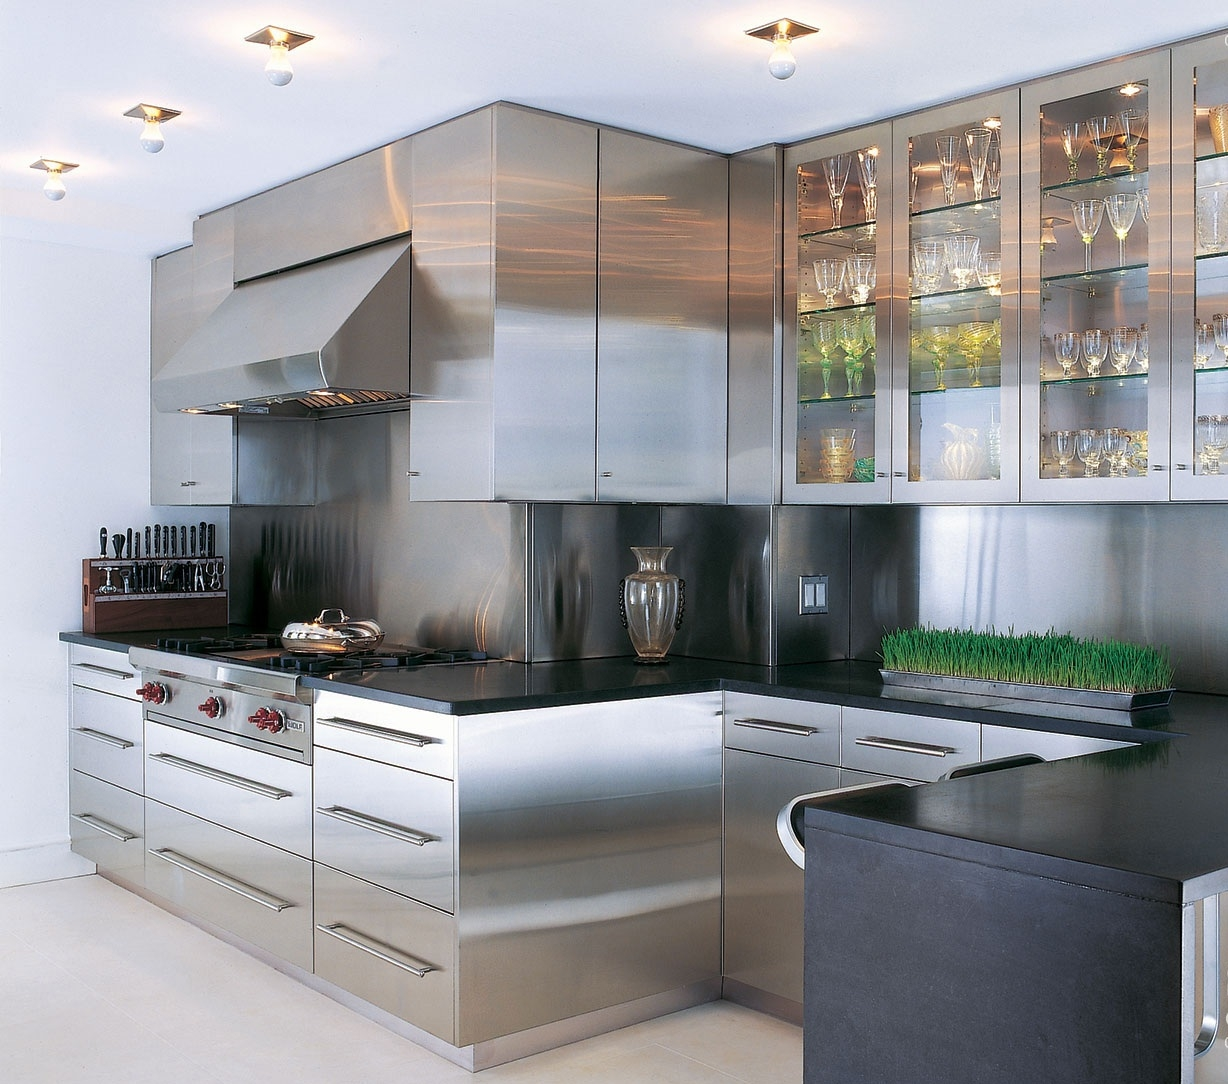 Kitchen Cabinet Stainless Steelstainless steel kitchen cabinets steelkitchen